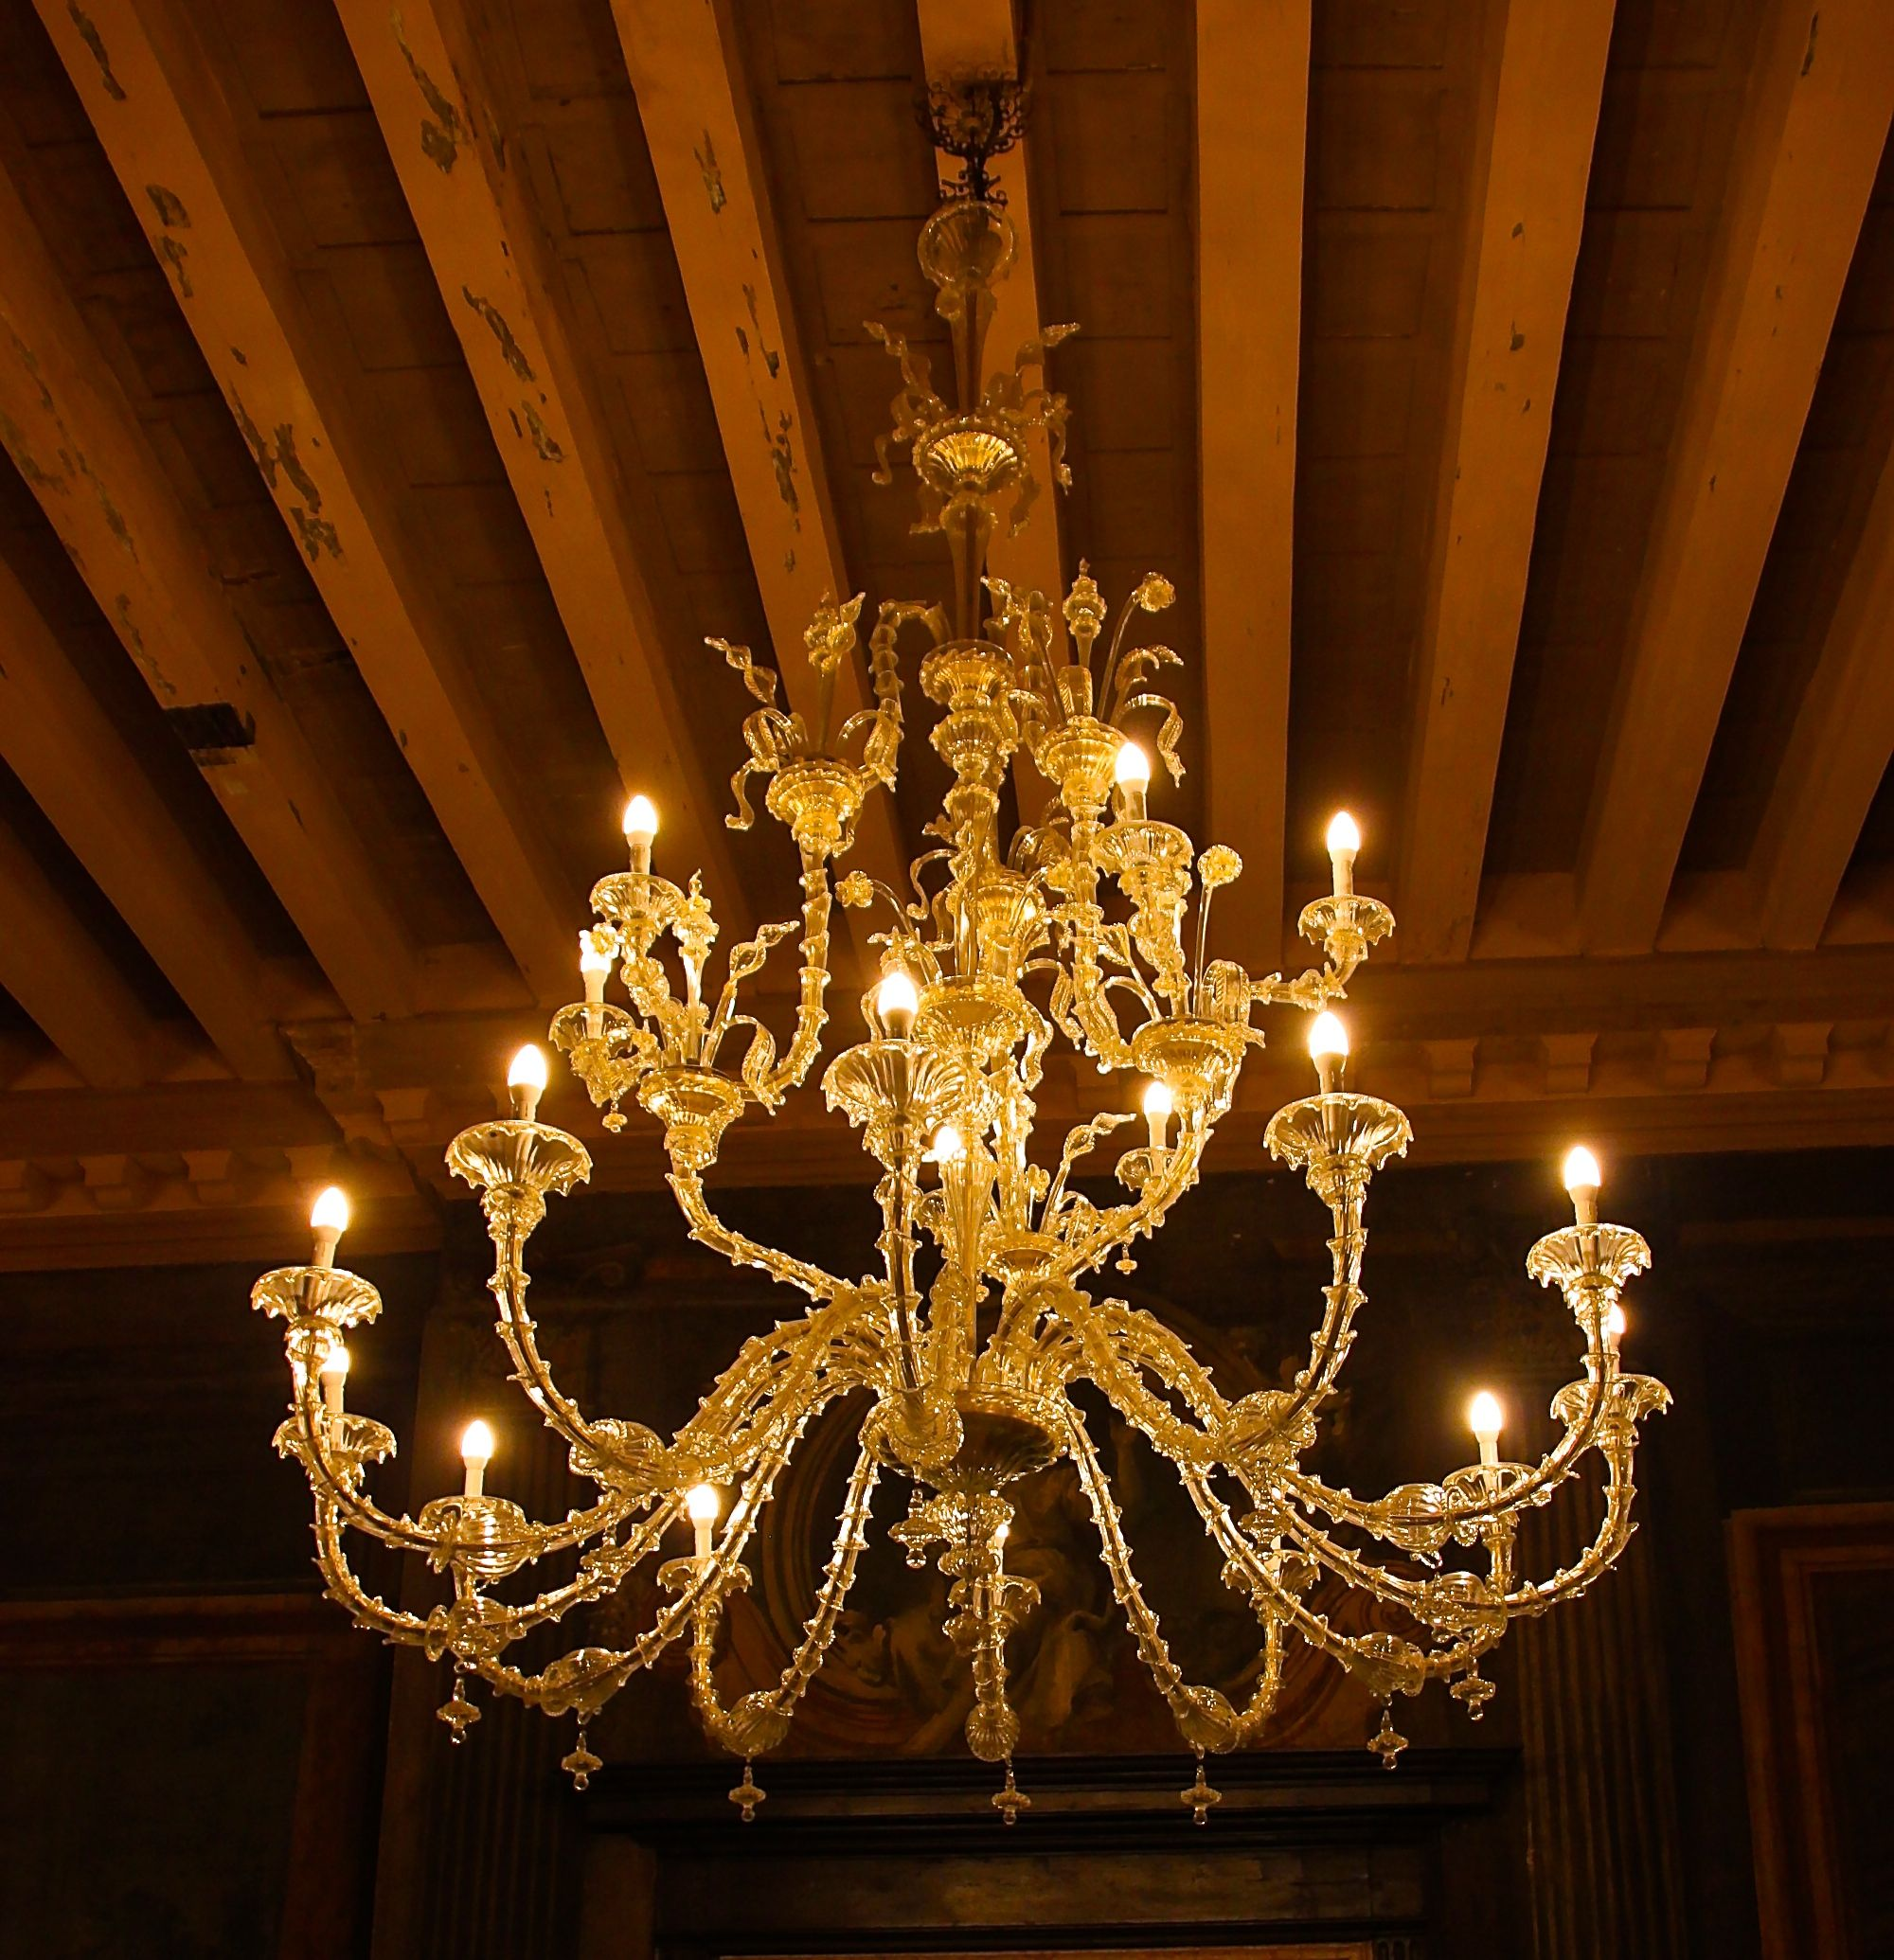 A glorious Murano glass chandelier at Ca' Sagredo Hotel